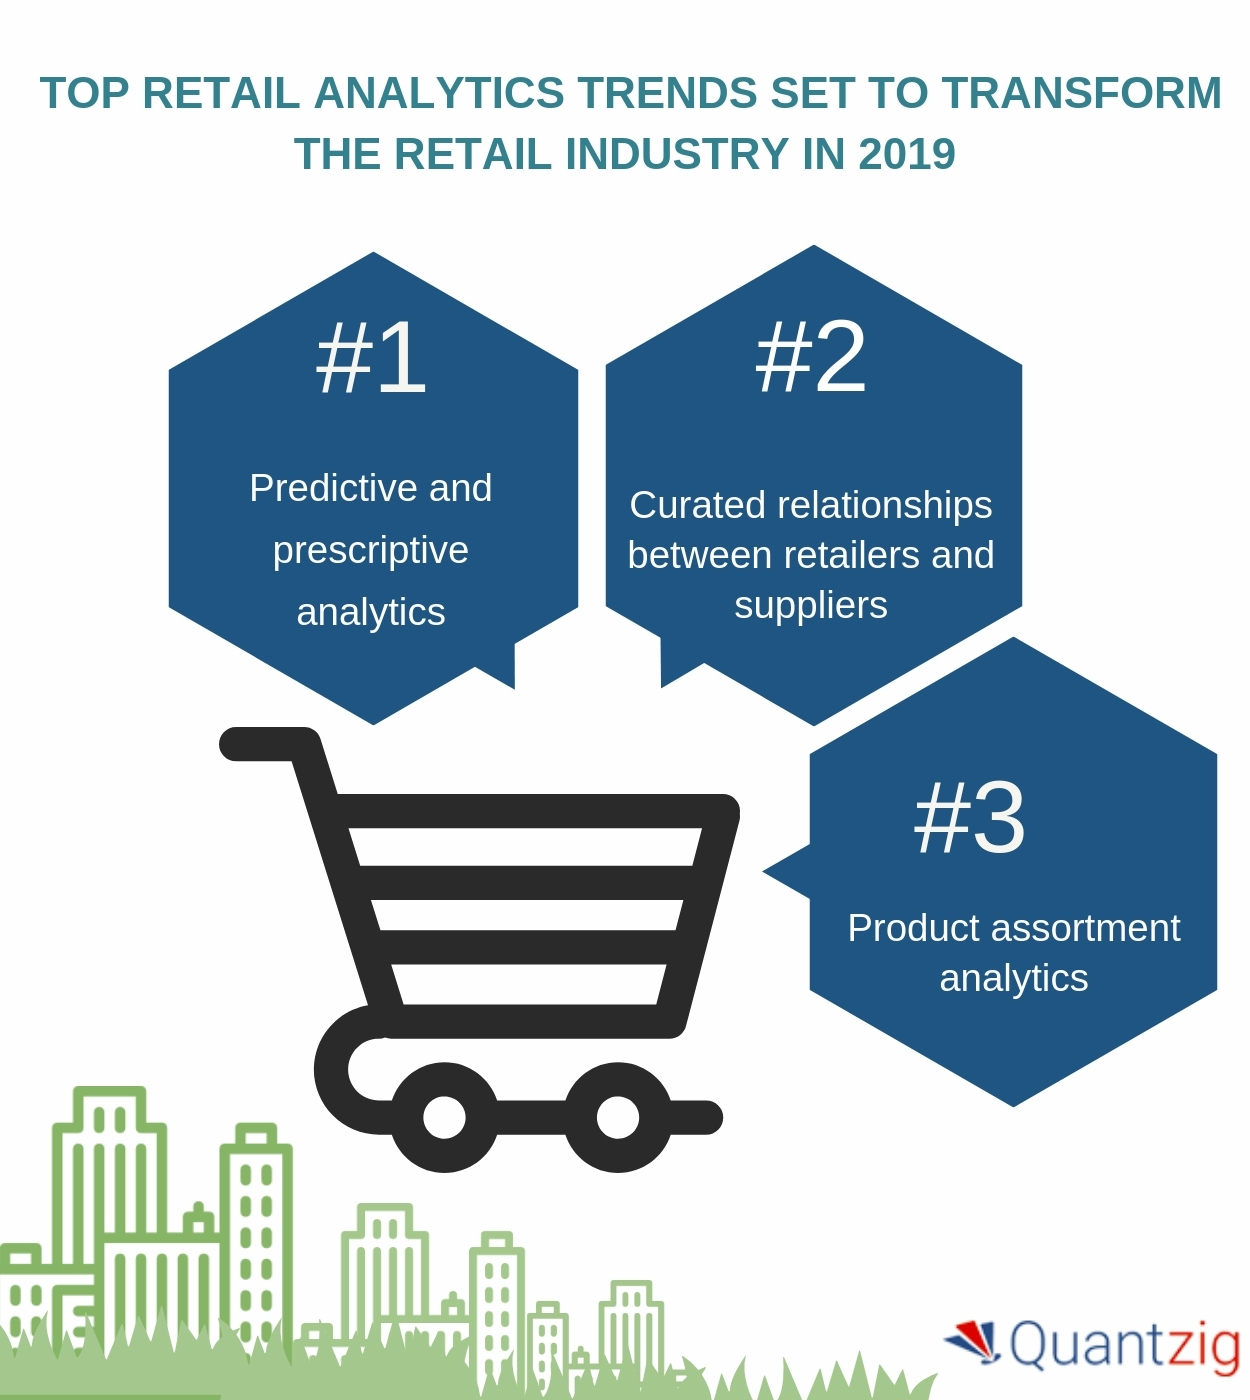 Top Retail Analytics Trends Set to Transform the Retail